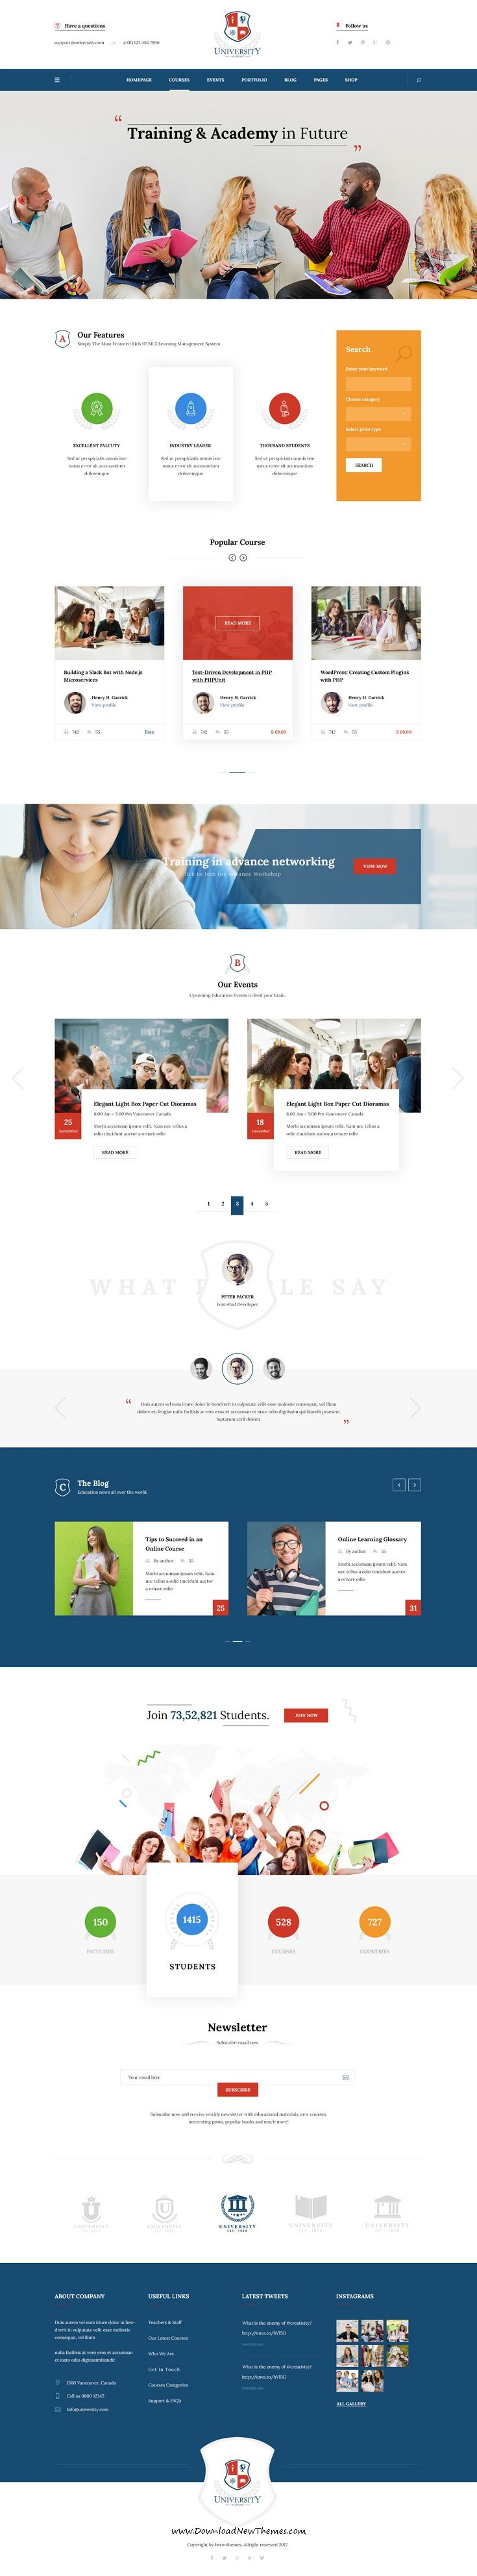 University Is Clean And Modern Design Psd Template For College Online Course Academy And Education Website With 6 Homep Psd Templates Templates Web Design